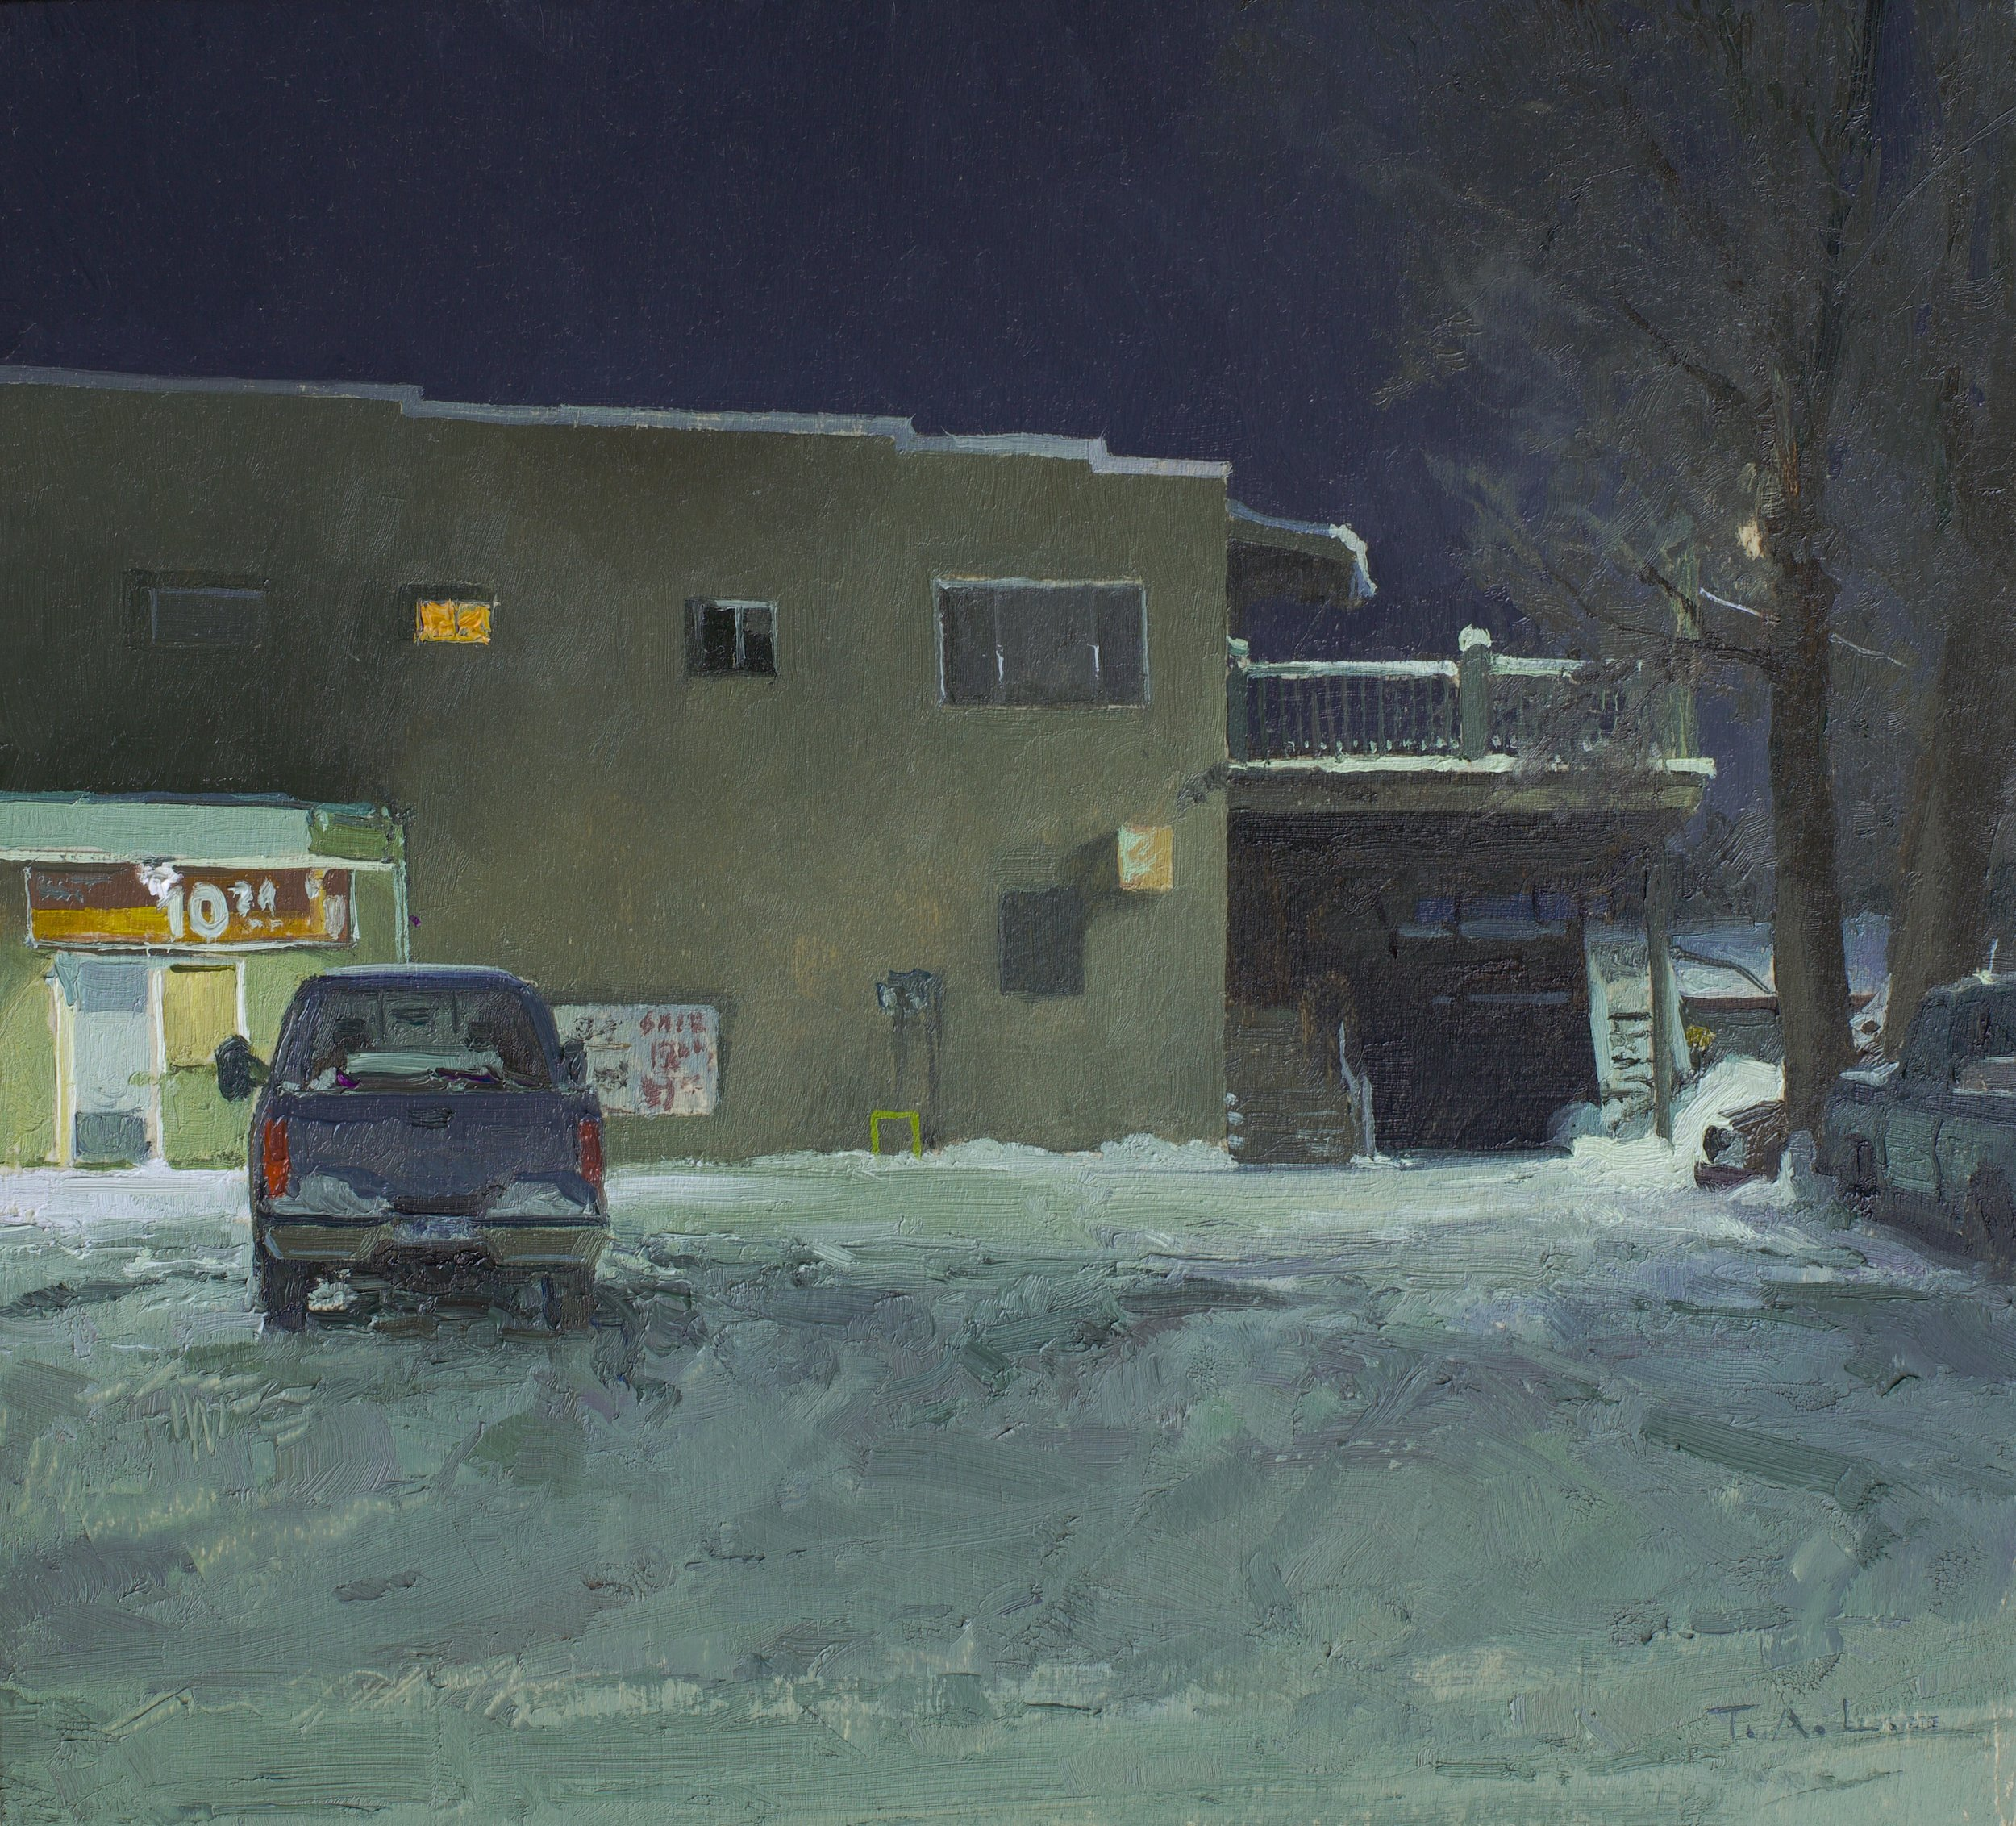 Late Night at the O.K. Corral, oil on panel, 9.5 x 10.5 in.